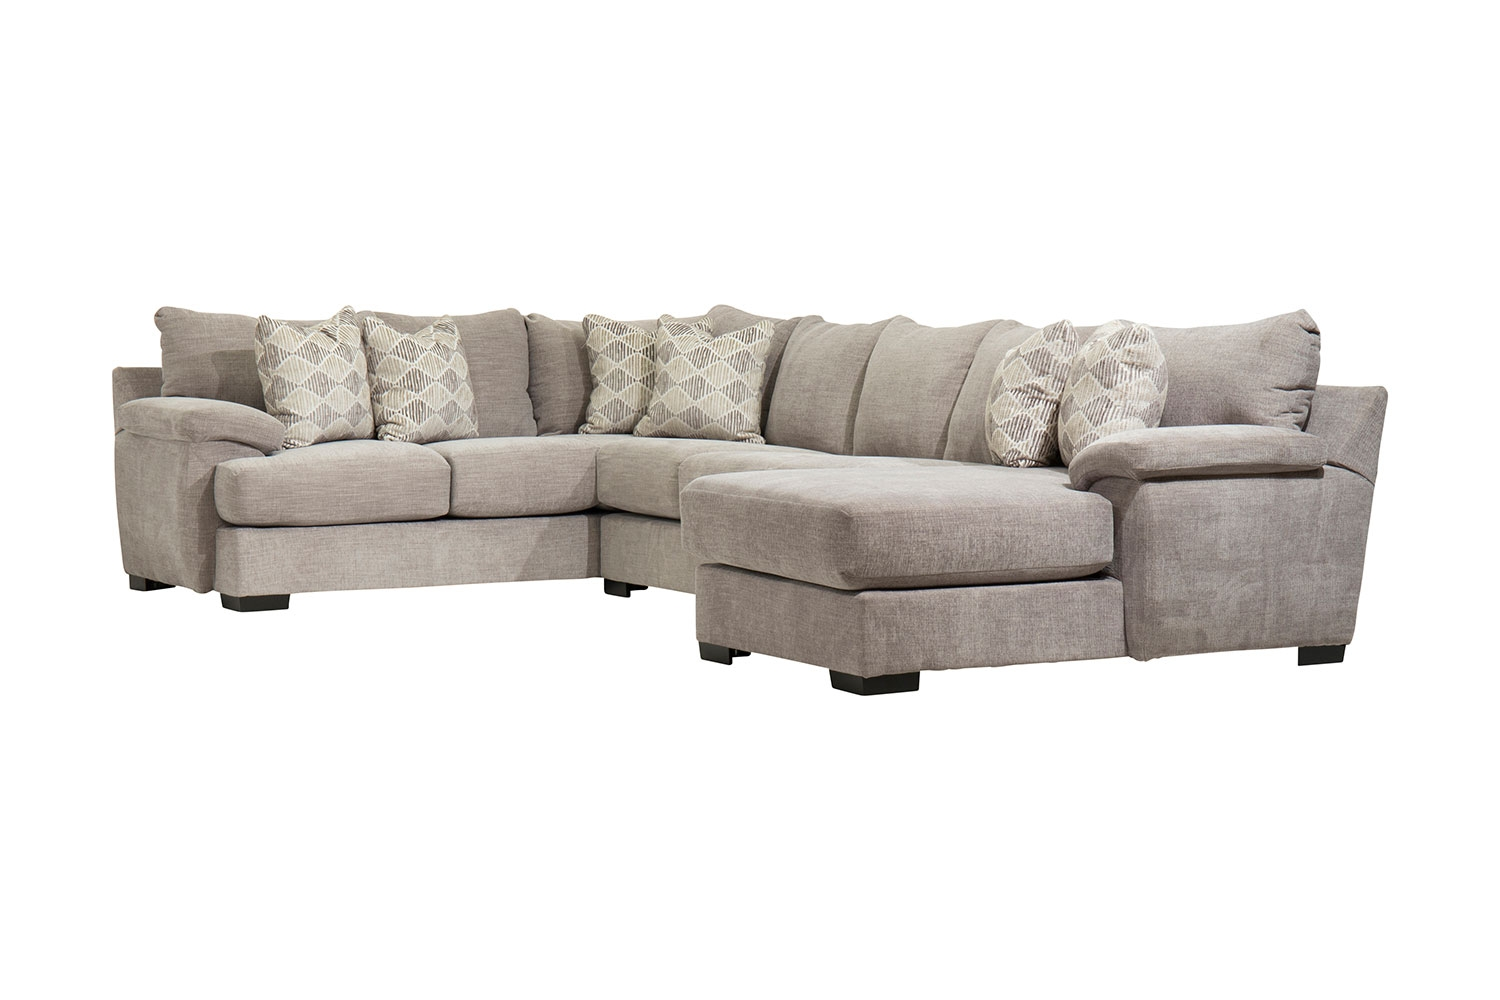 Peachy Bermuda Right Facing Sofa Chaise Sectional In Smoke Mor Pabps2019 Chair Design Images Pabps2019Com